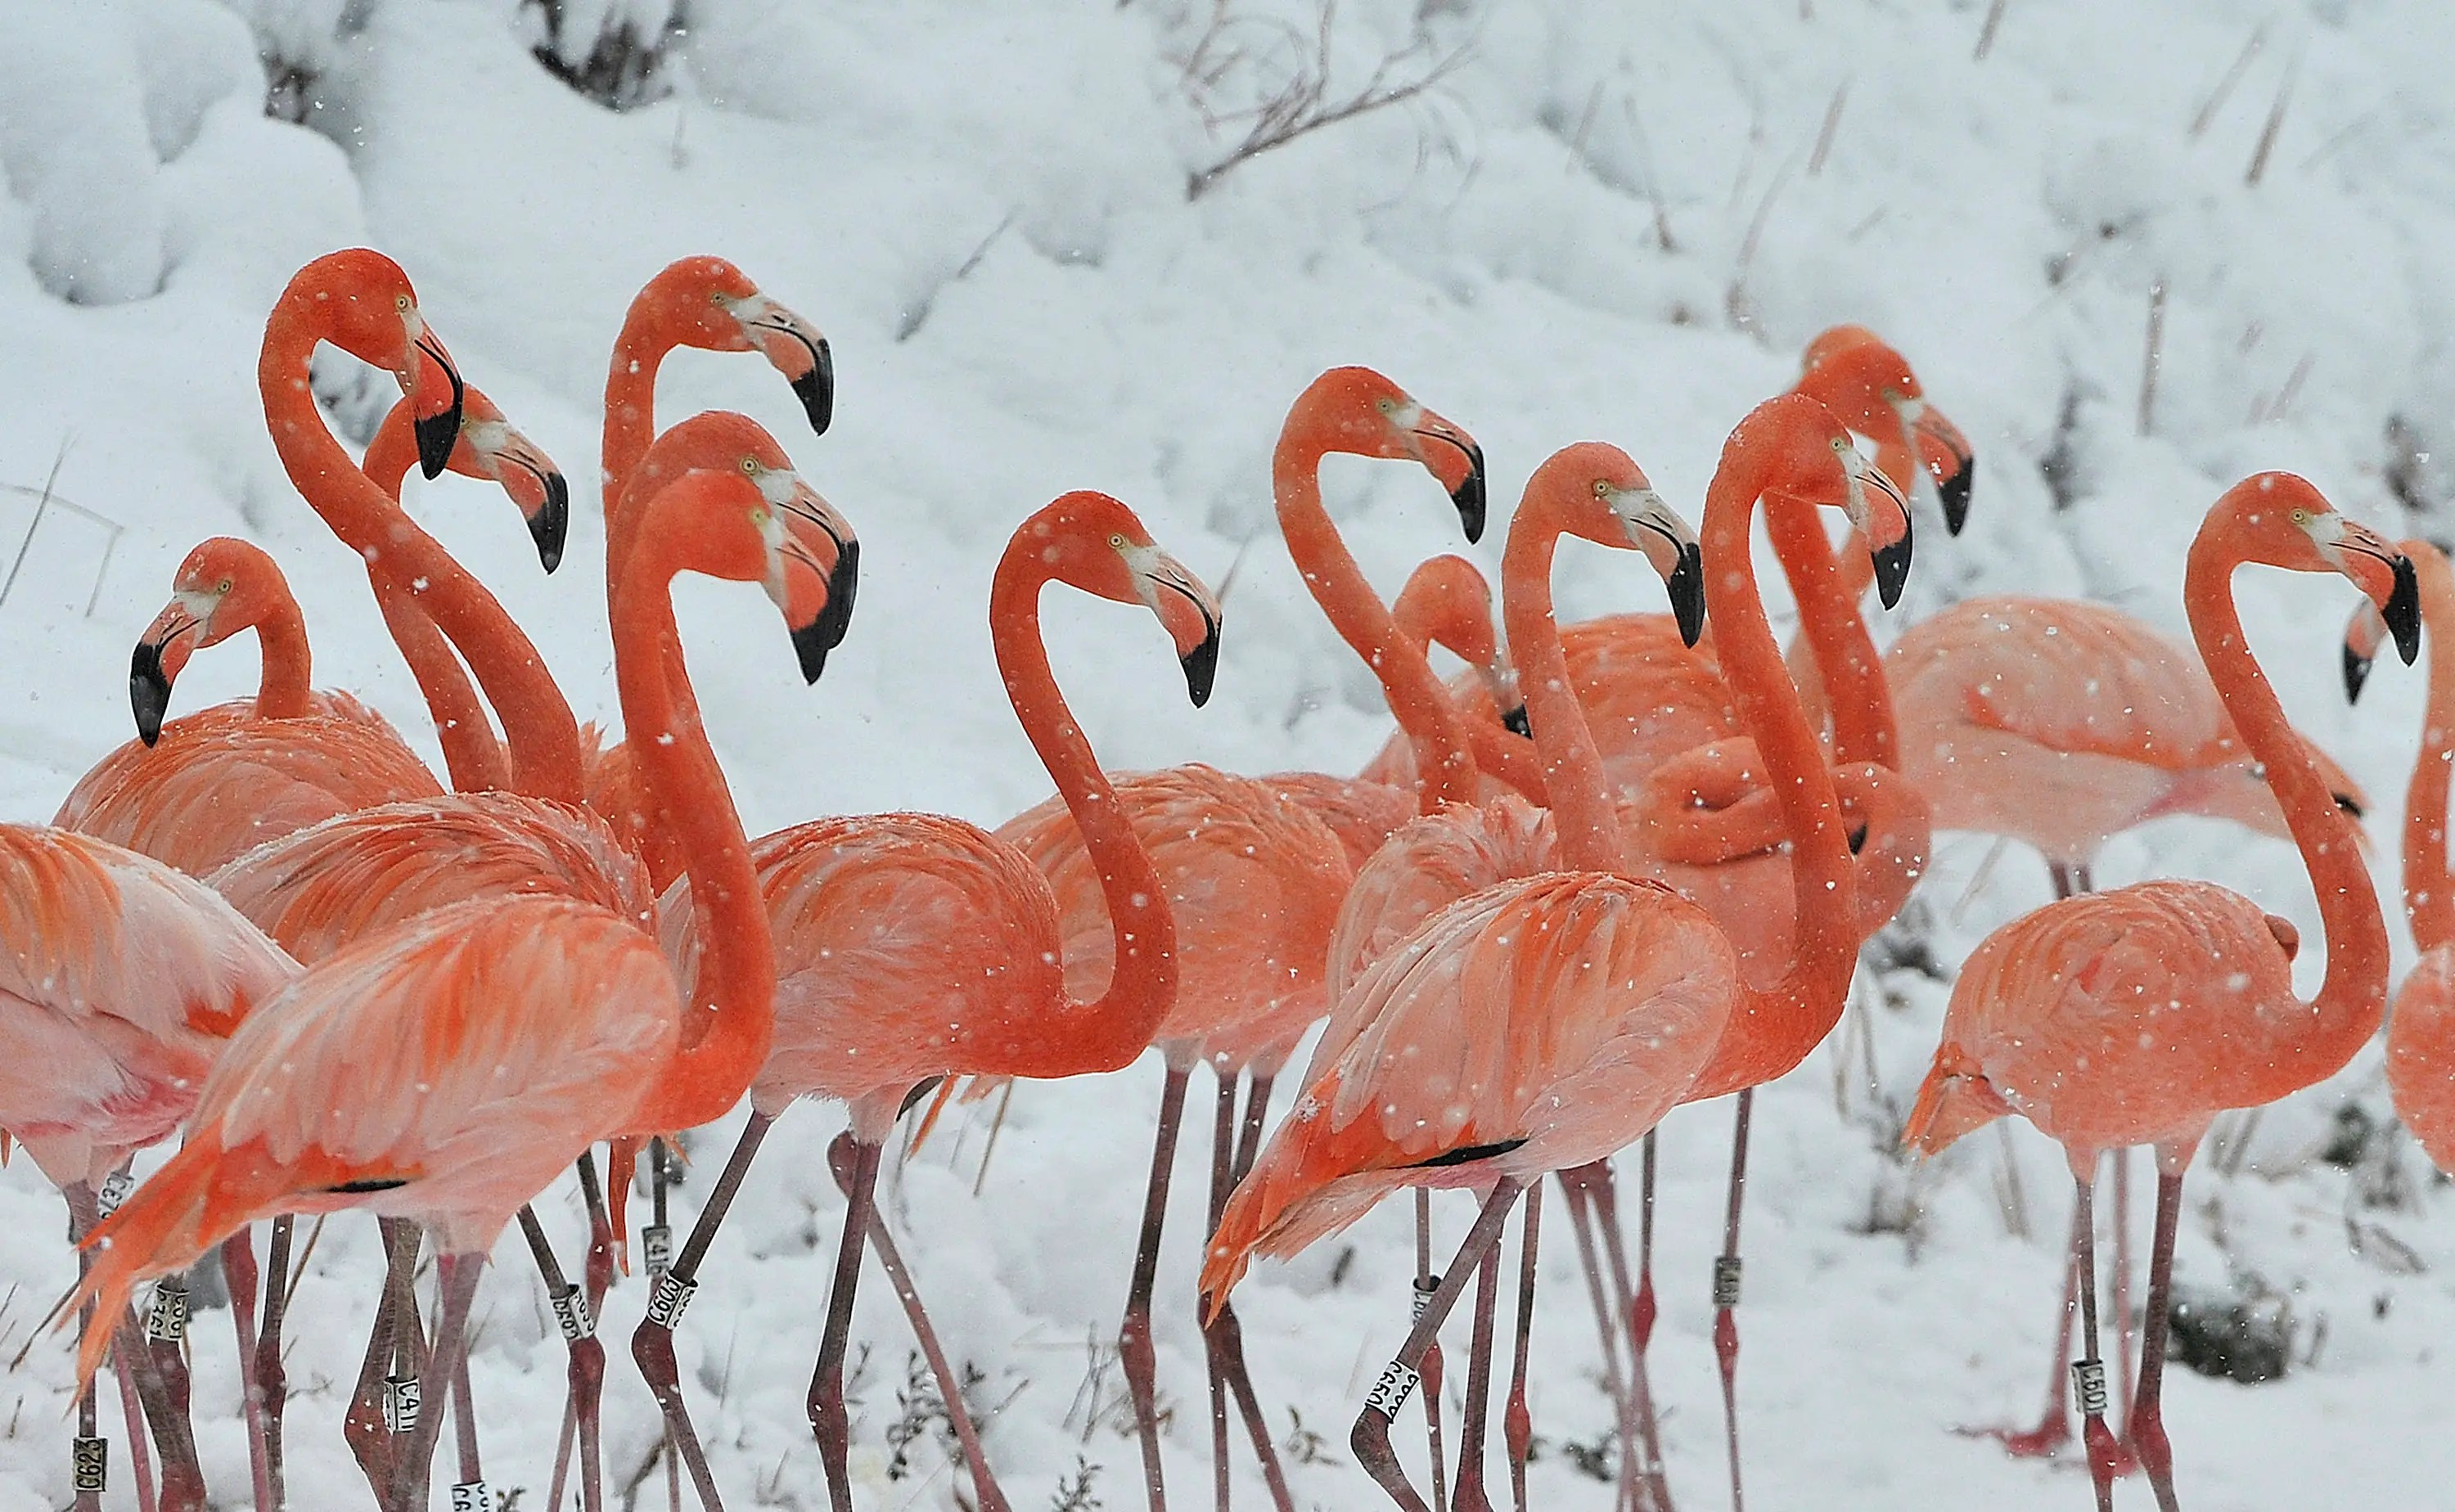 Snow falls on a flock of flamingos at a wildlife zoo in eastern China's Anhui province.